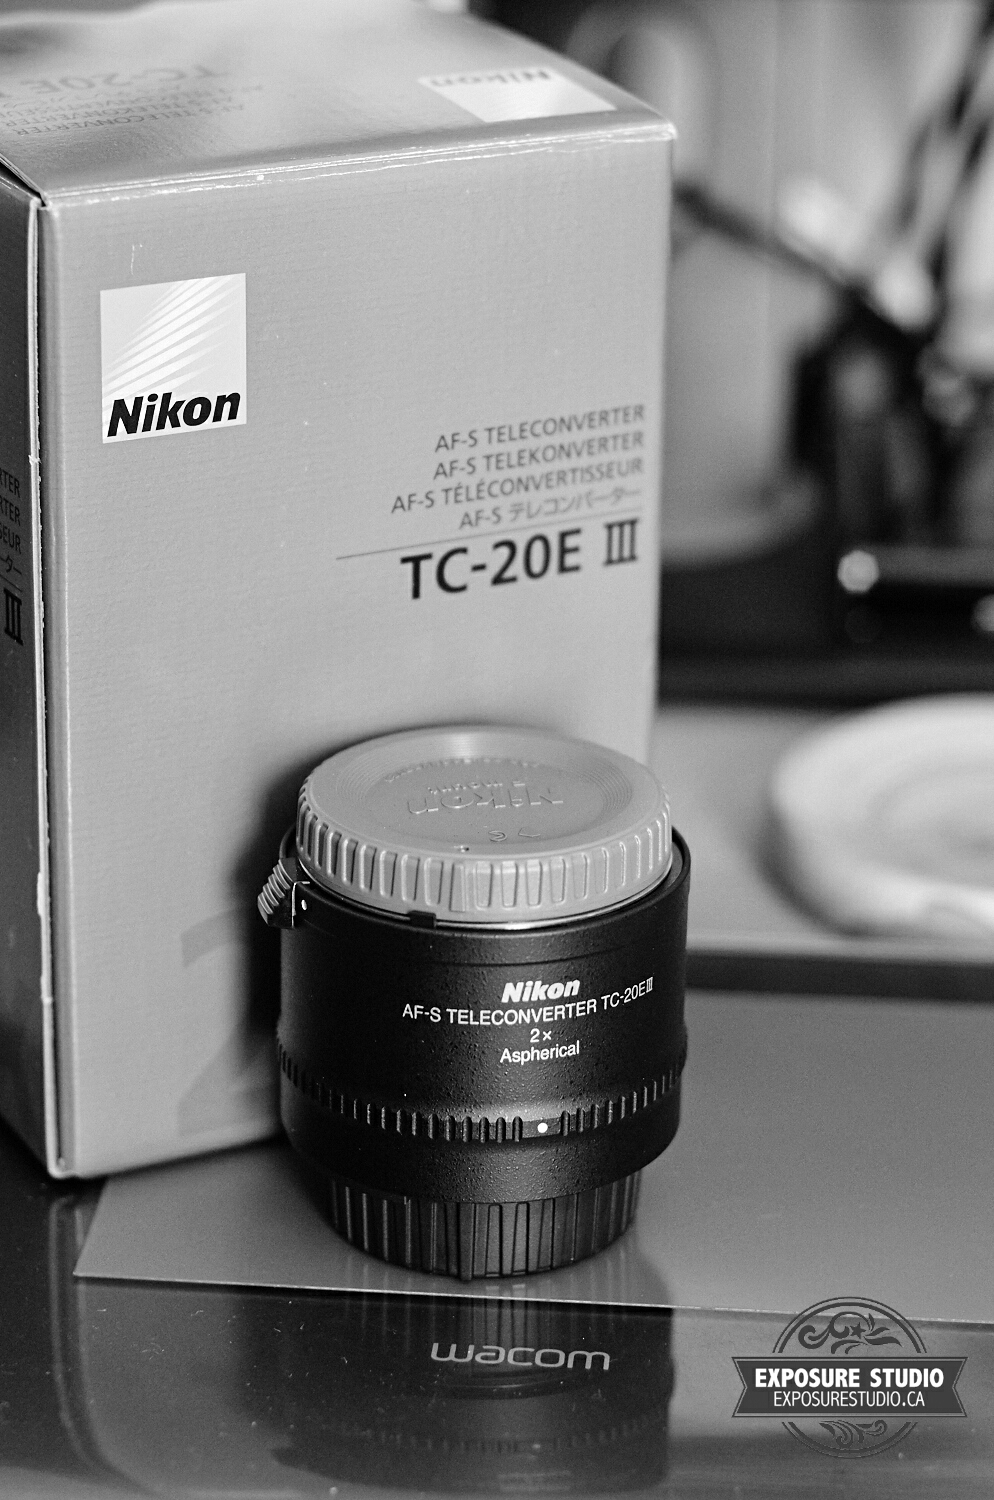 Small, compact and light the new Nikon TC-20E III teleconverter will get the job done.